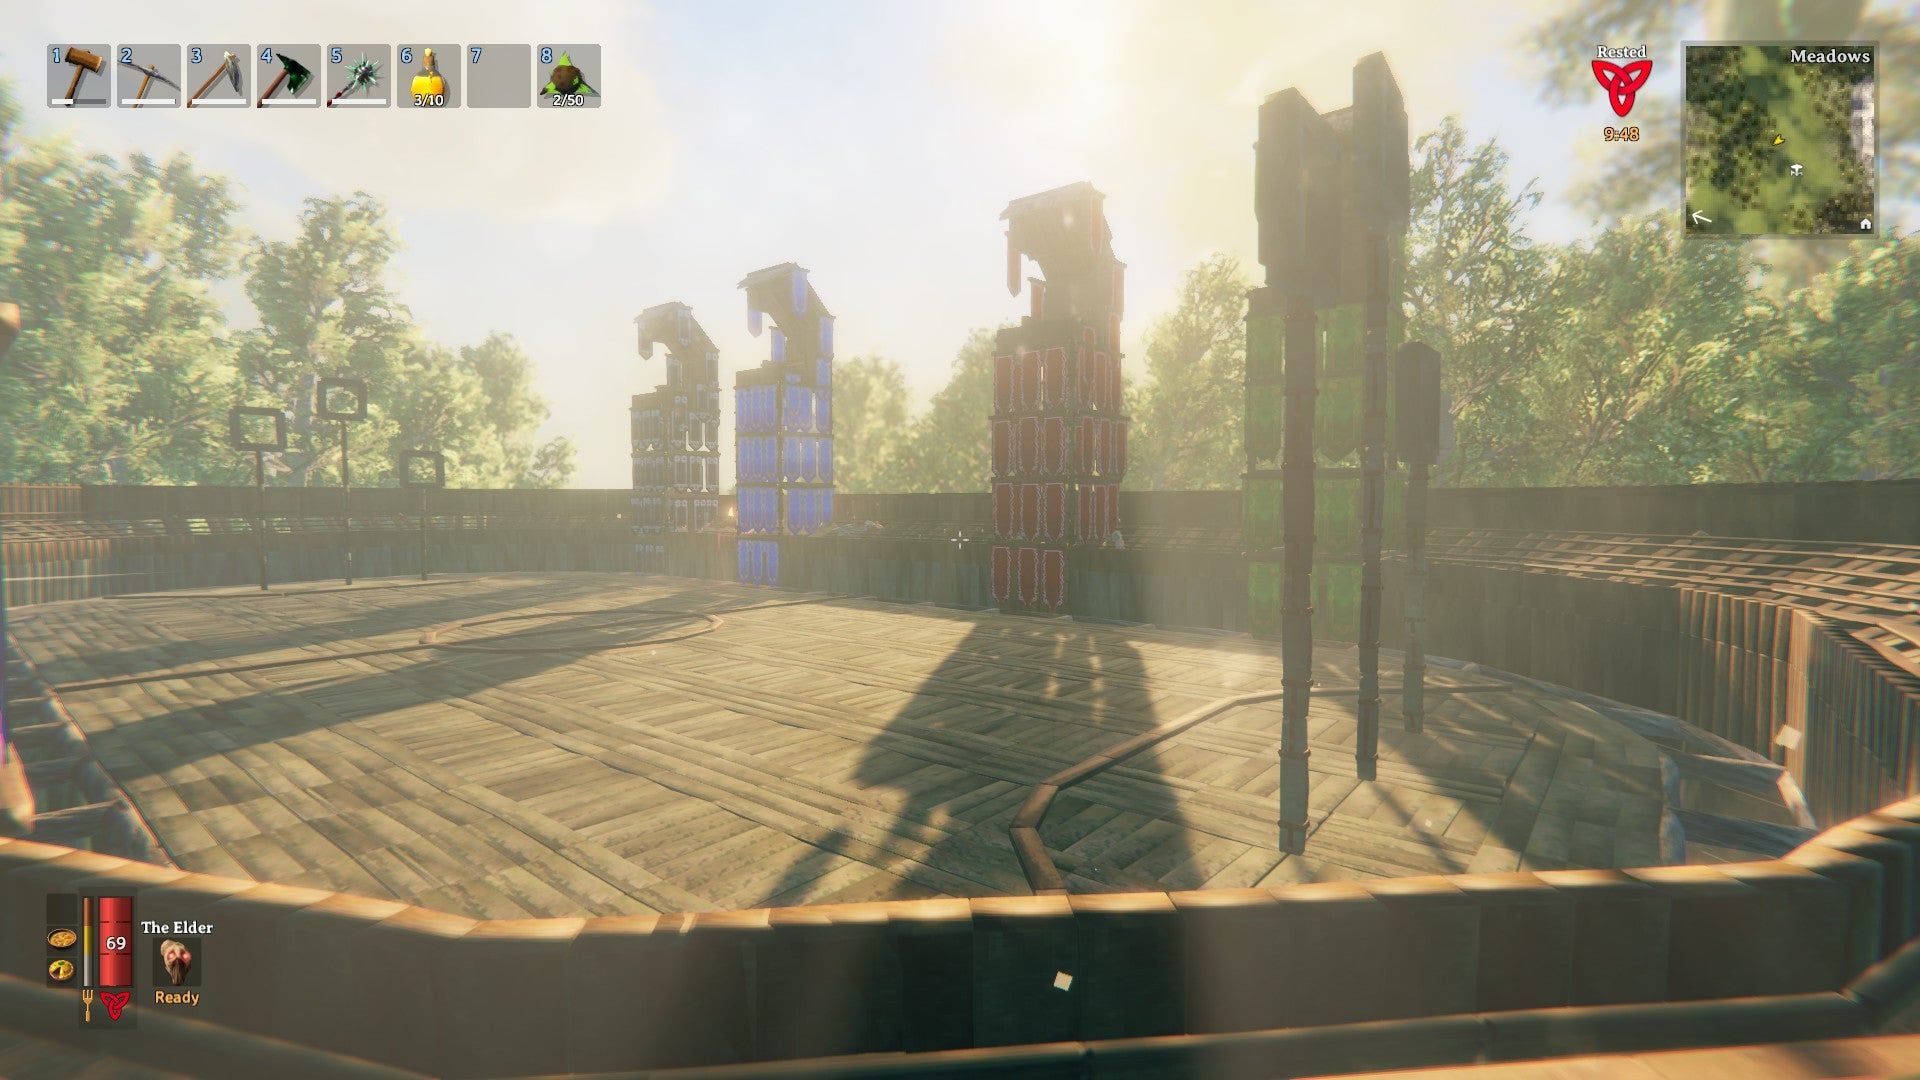 The Quidditch pitch was meticulously recreated with attention to detail, using the game's various materials.